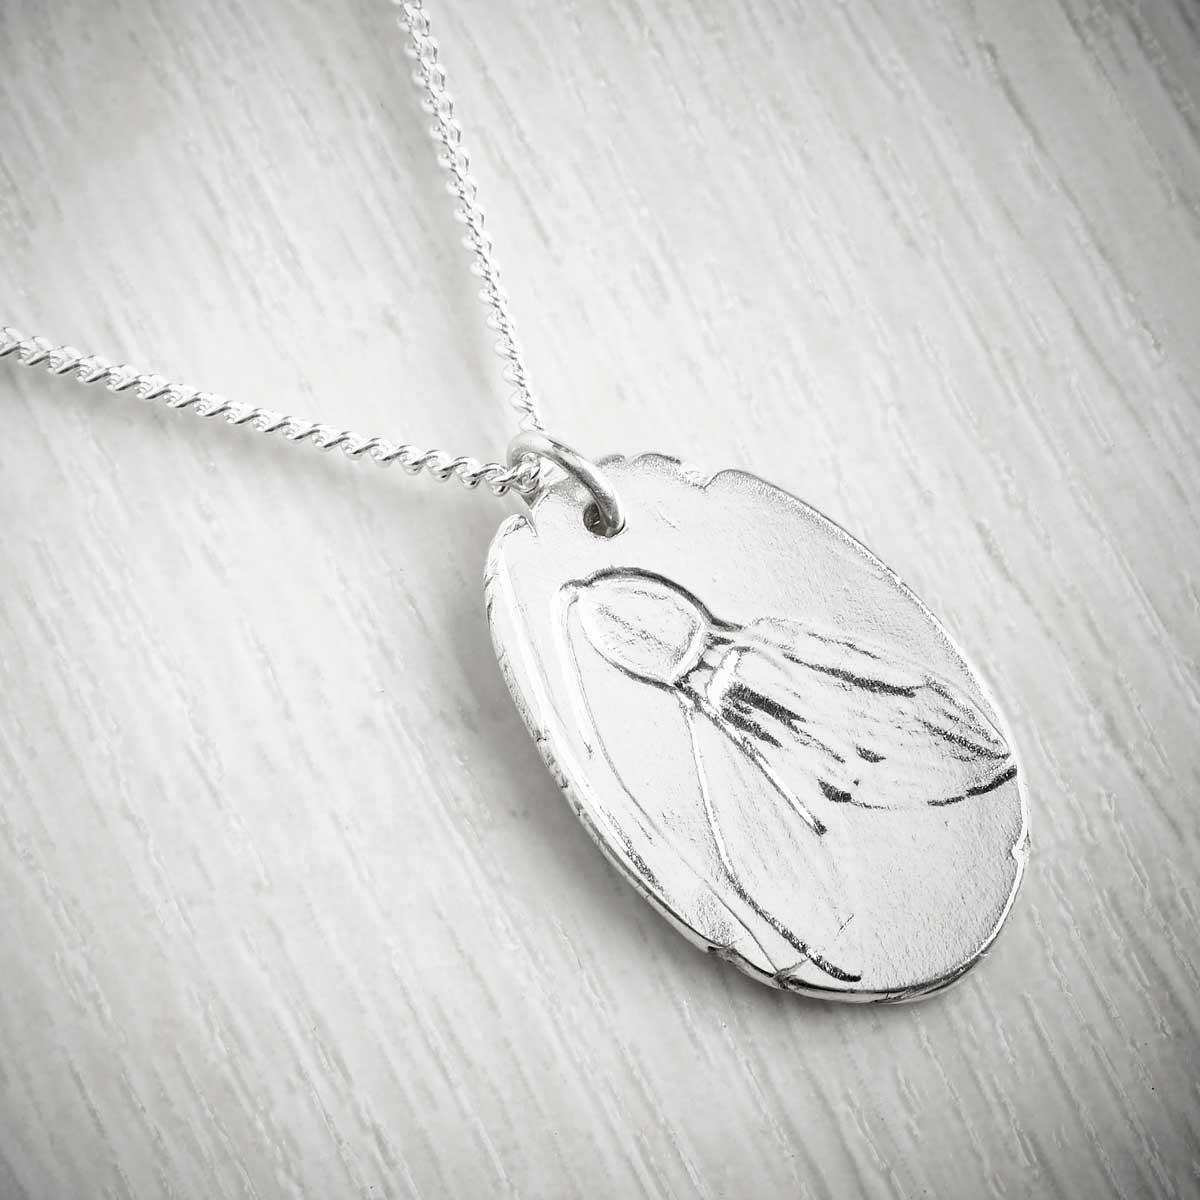 Handmade necklace with a snowdrop imprint on a grey background. Made by Becca Macdonald, image property of THE JEWELLERY MAKERS.